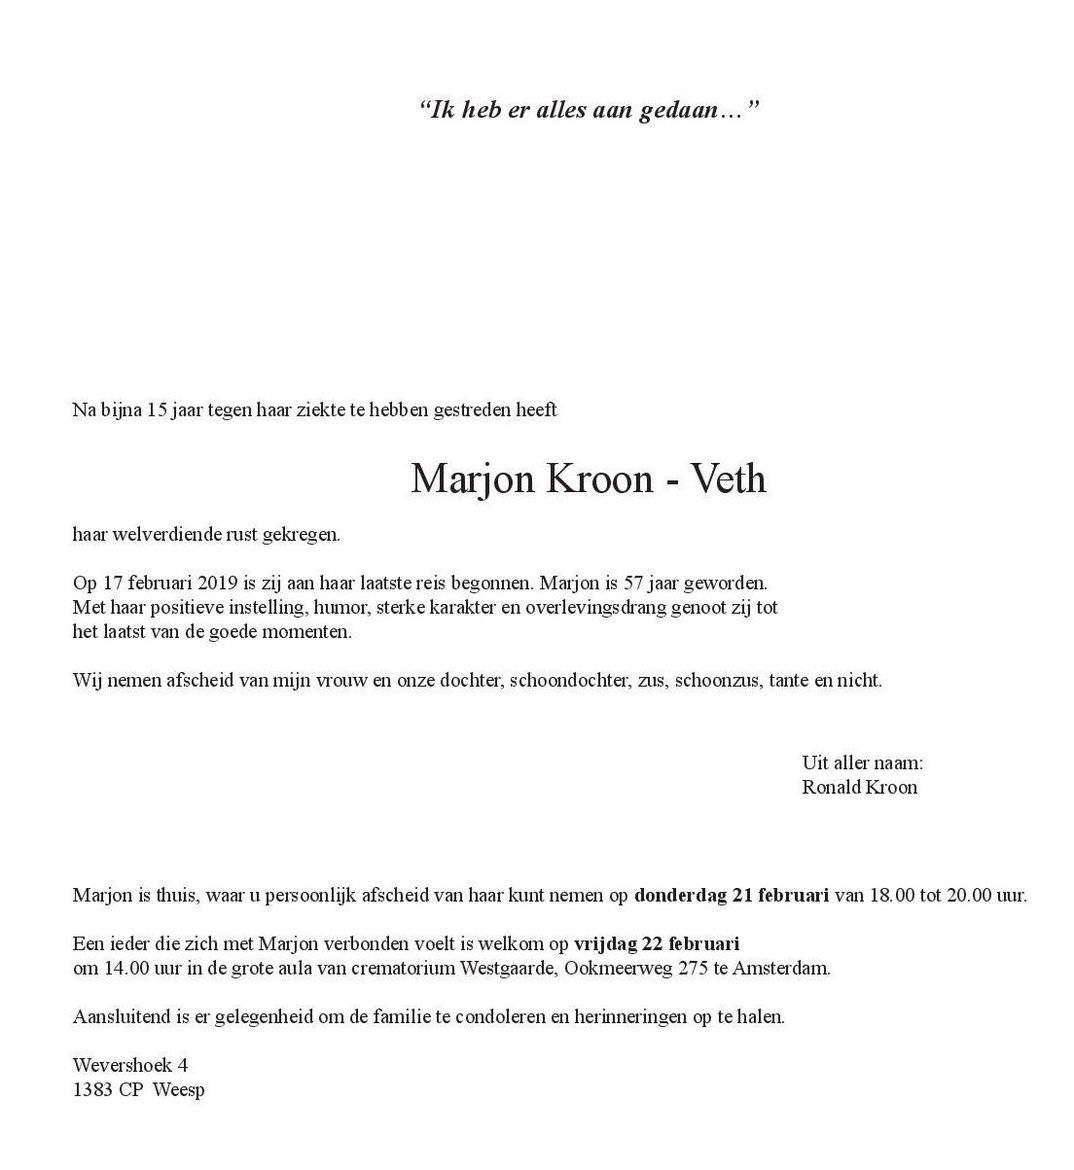 19-02-18-marion-kroon-veth-page-001-1